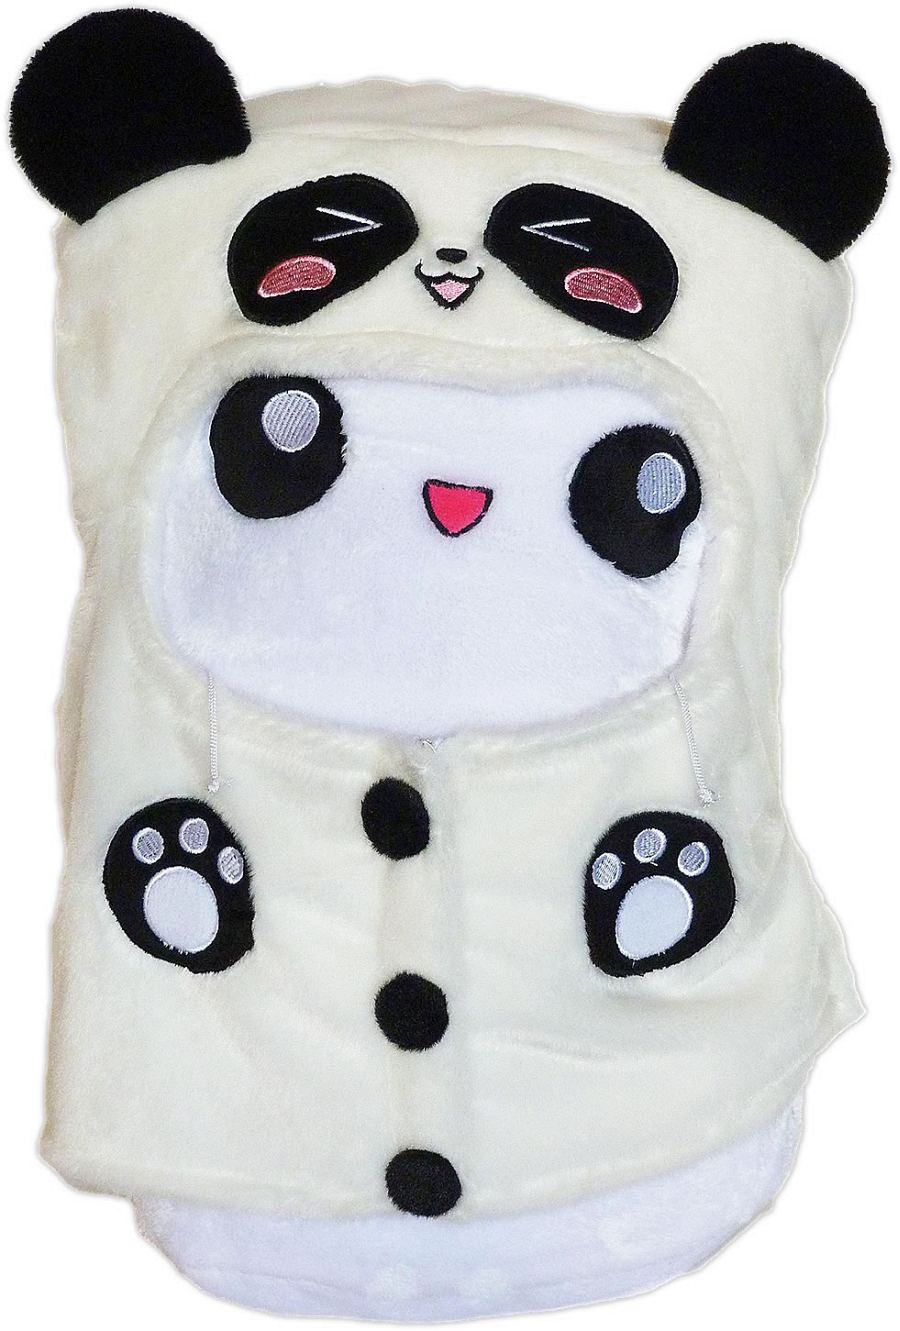 Pillows And Cushions Gifts picture on marshi mike panda hoodie plush pillow with Pillows And Cushions Gifts, sofa a4f2a64550e49827be8e494974aaa79f